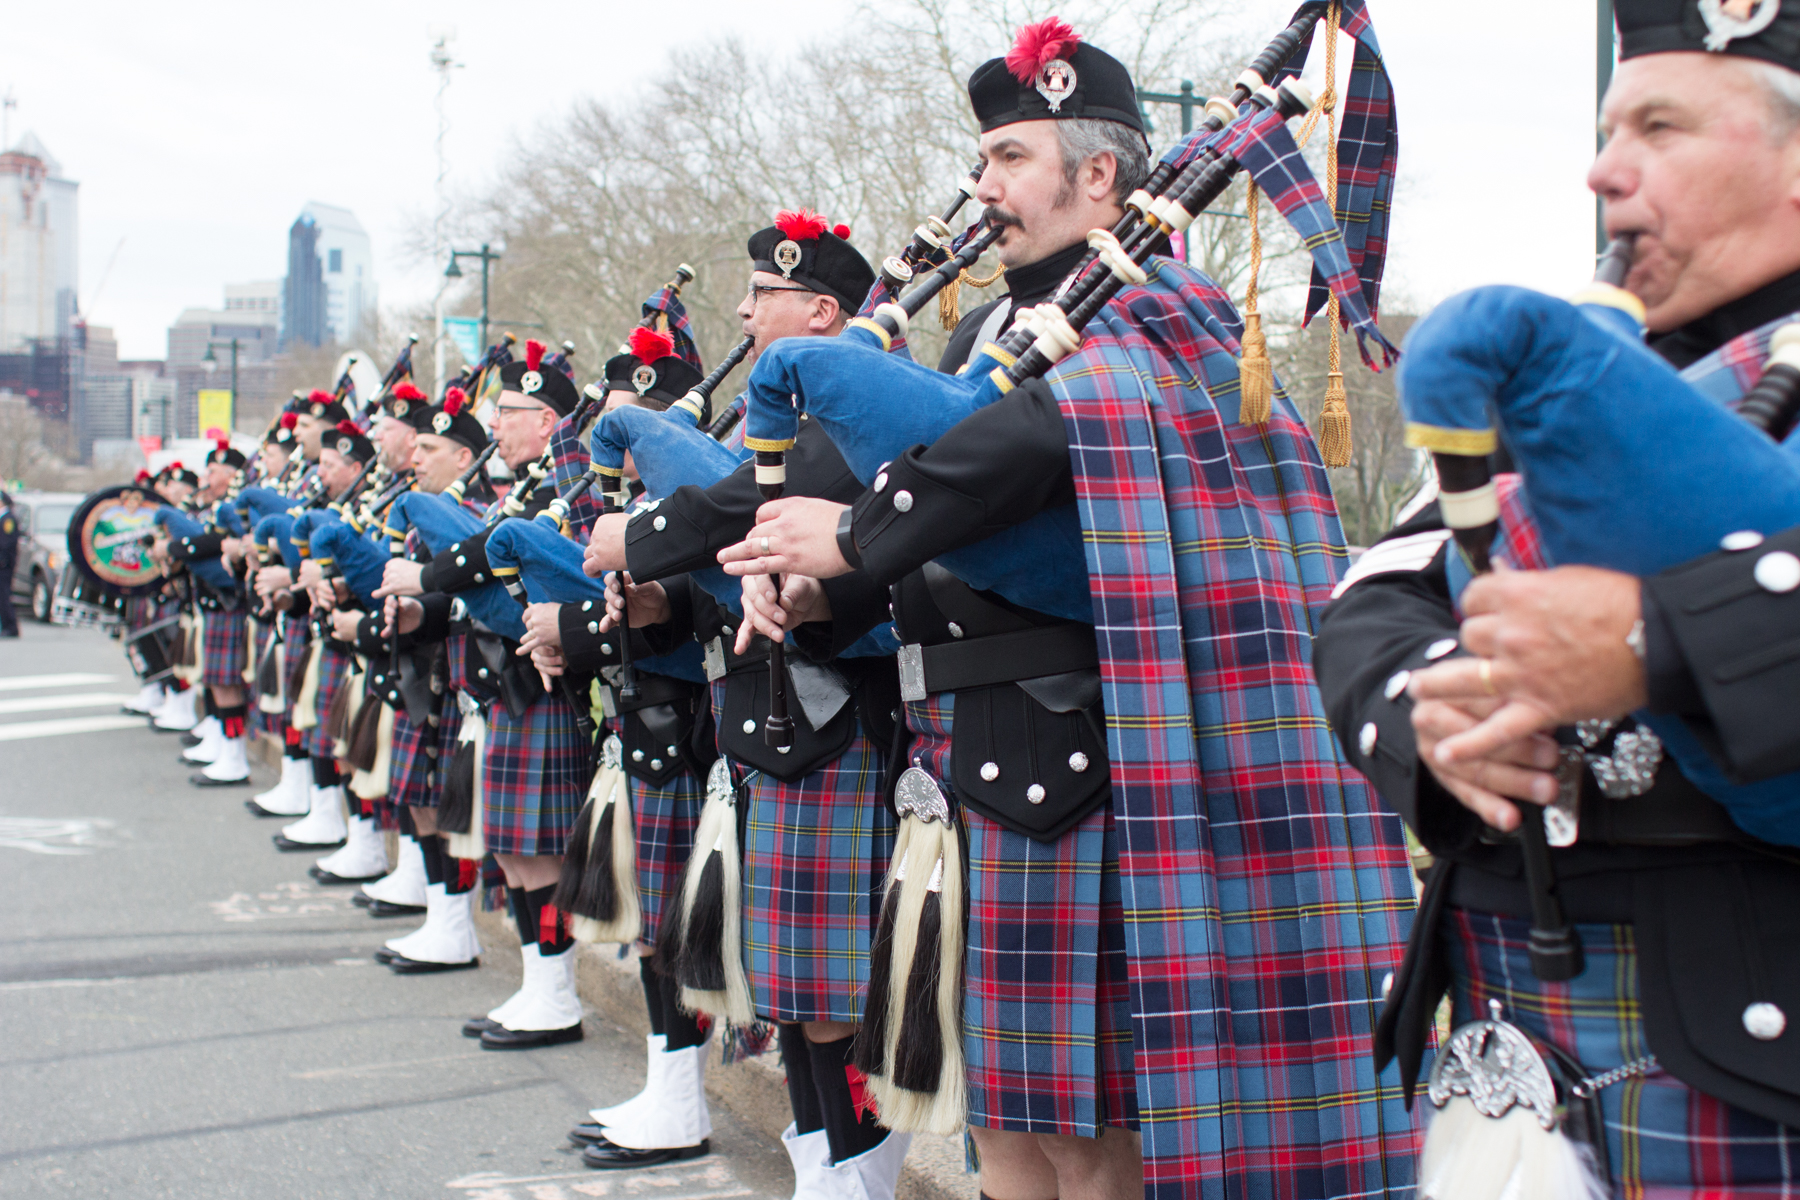 Home | Philadelphia Police & Fire Pipes and Drums |Police Pipe Band Uniforms